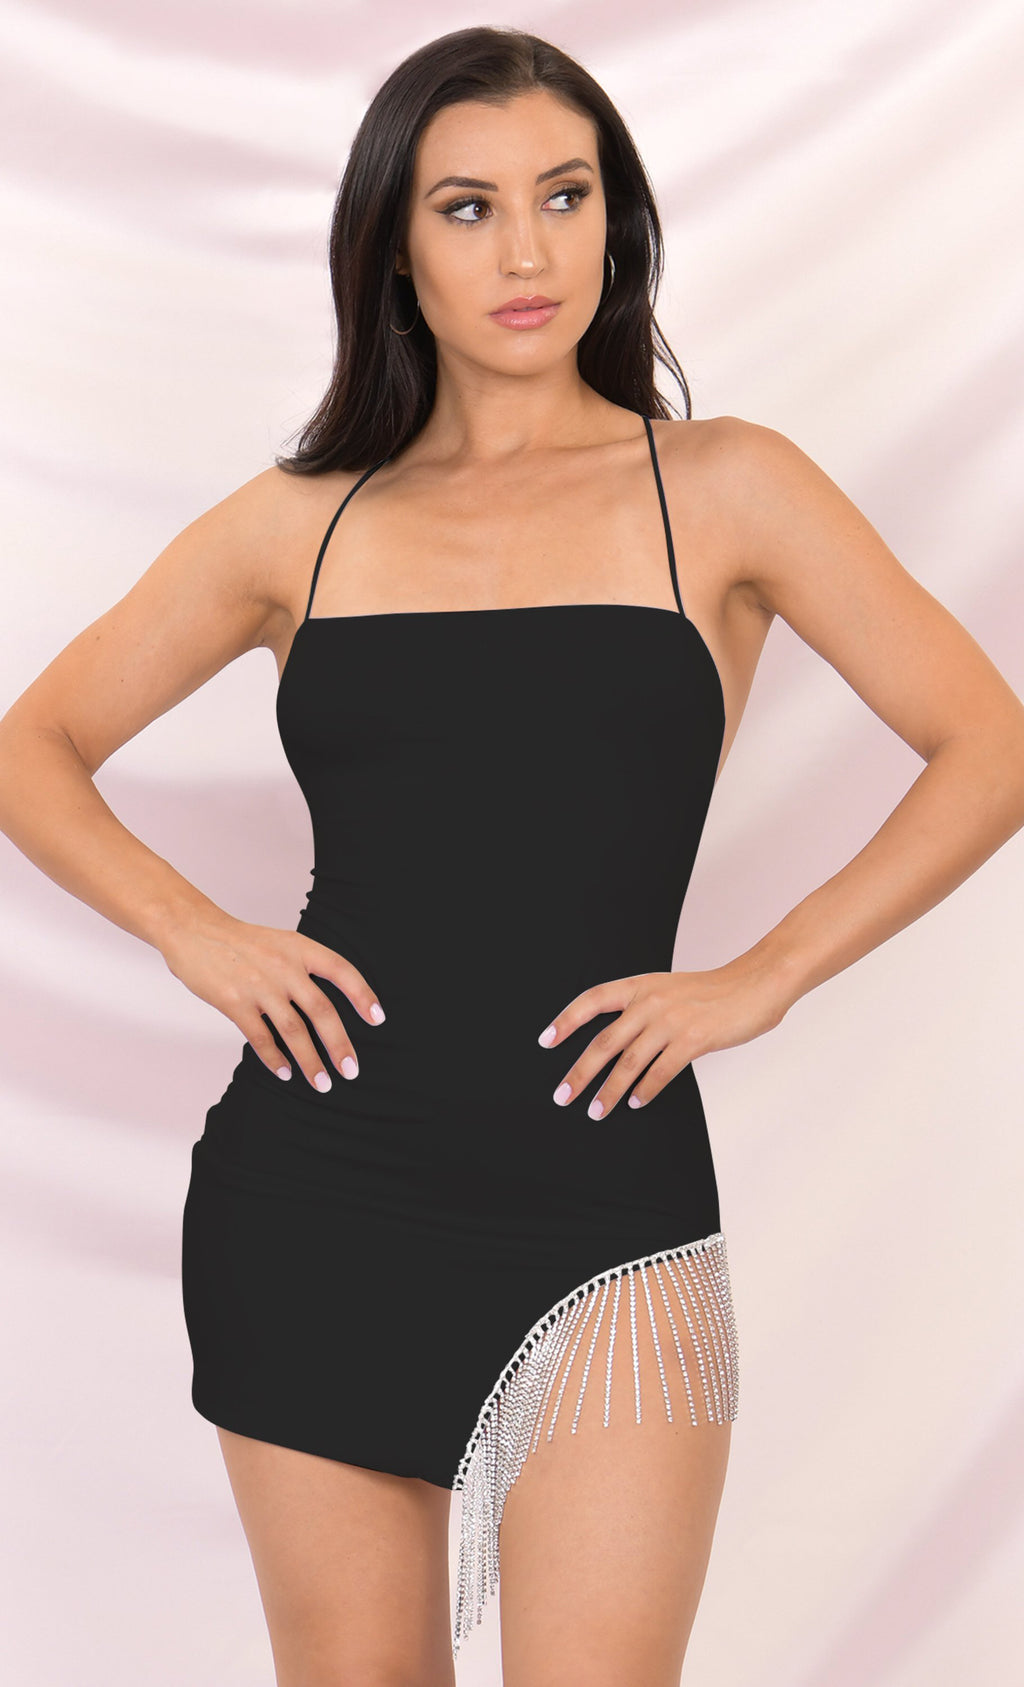 Born to Shine Black Sleeveless Spaghetti Strap Cross Back Rhinestone Fringe Cut Out Bodycon Mini Dress - 3 Colors Available